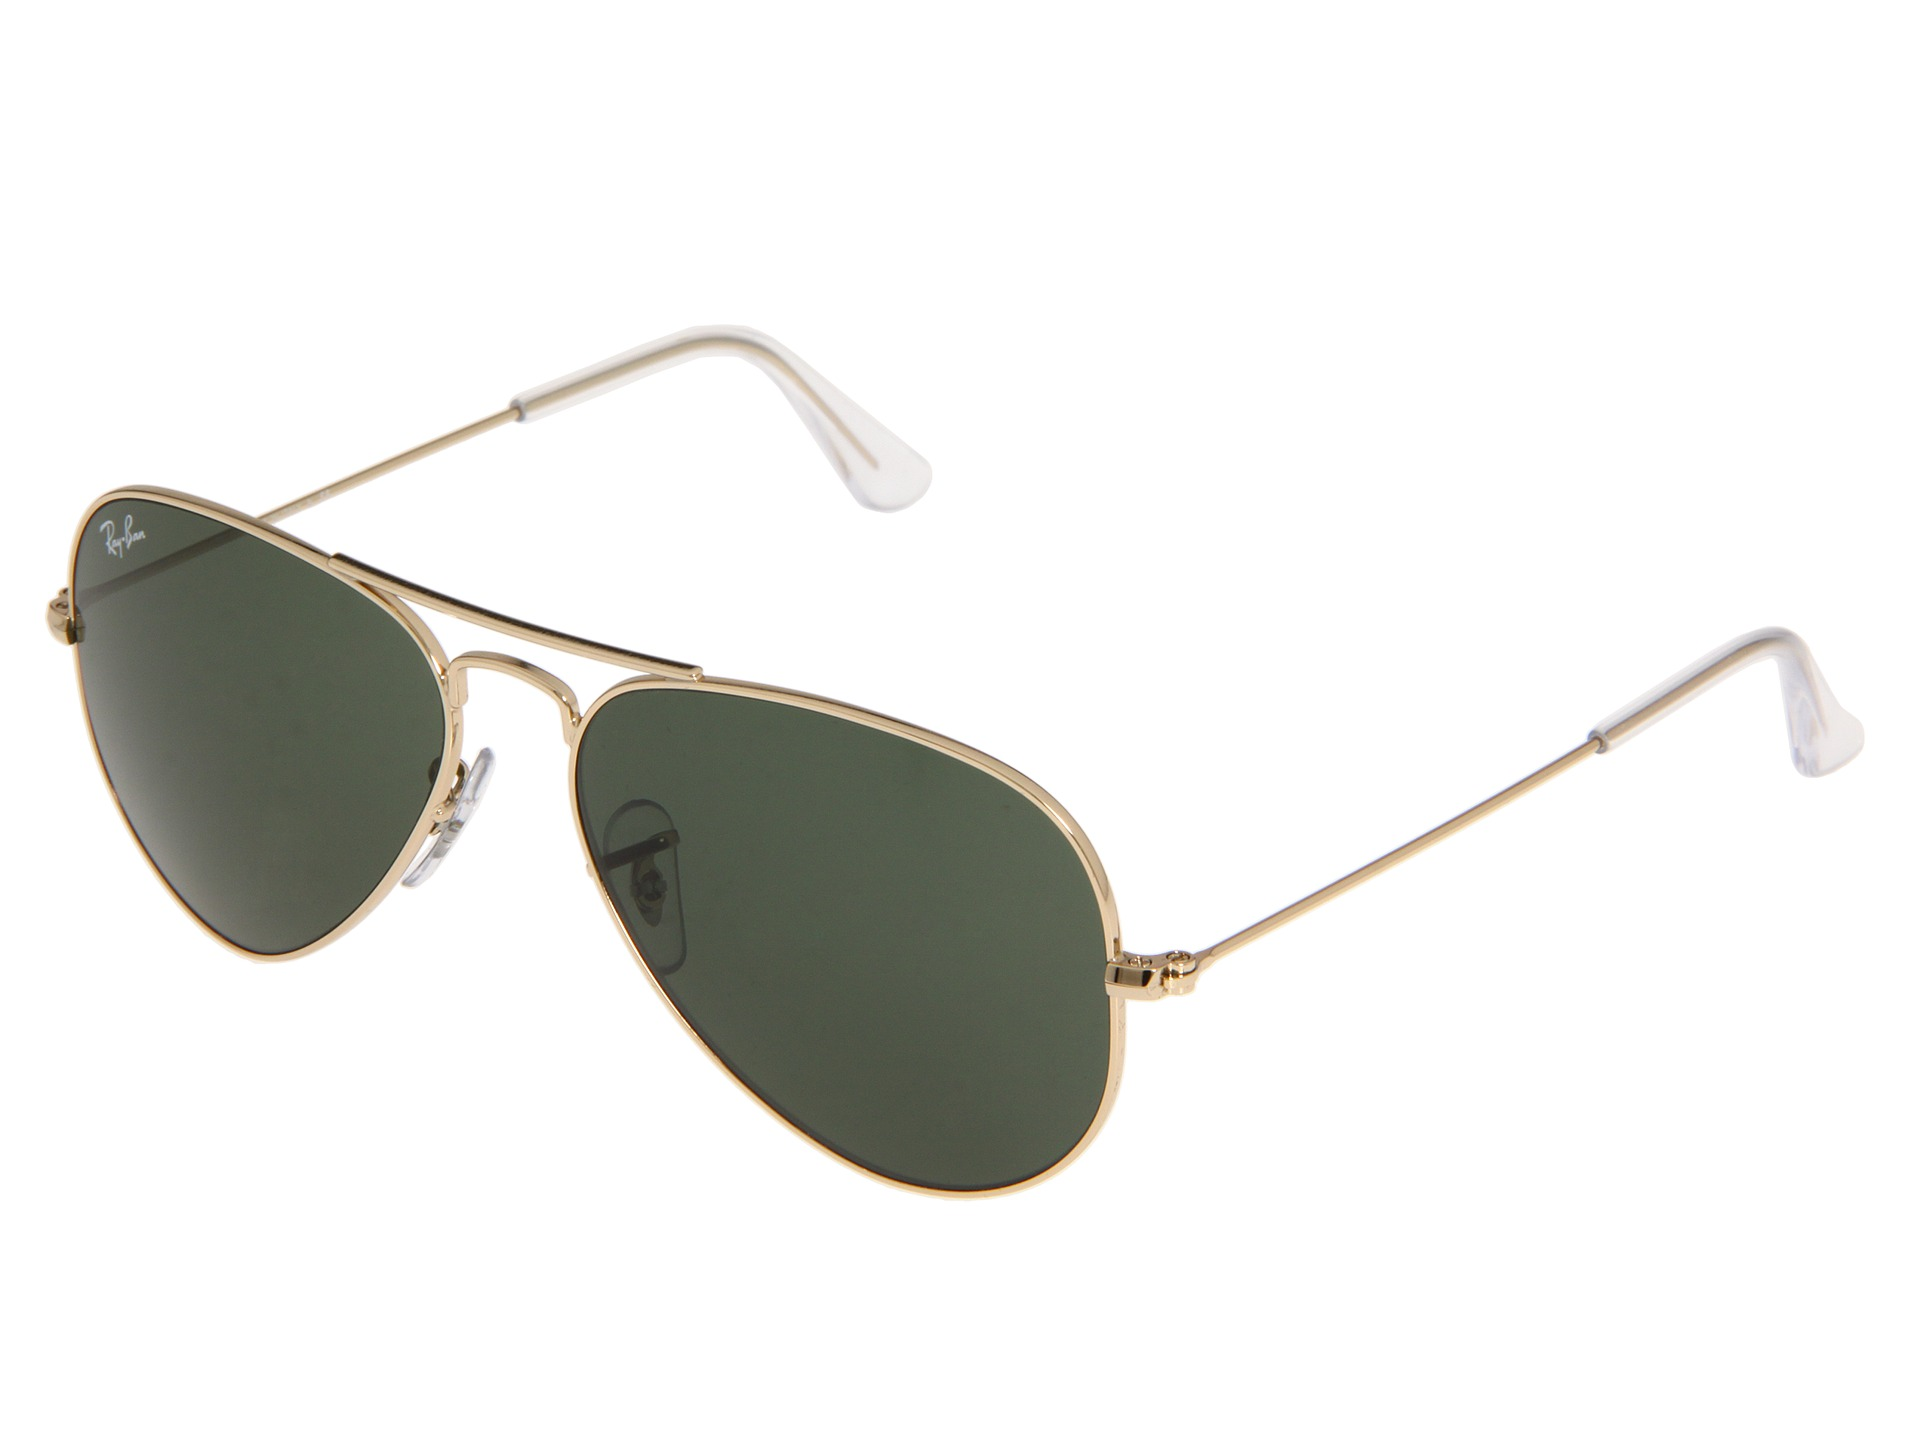 ray ban 3025 aviator size 55mm eyewear shipped free at zappos. Black Bedroom Furniture Sets. Home Design Ideas